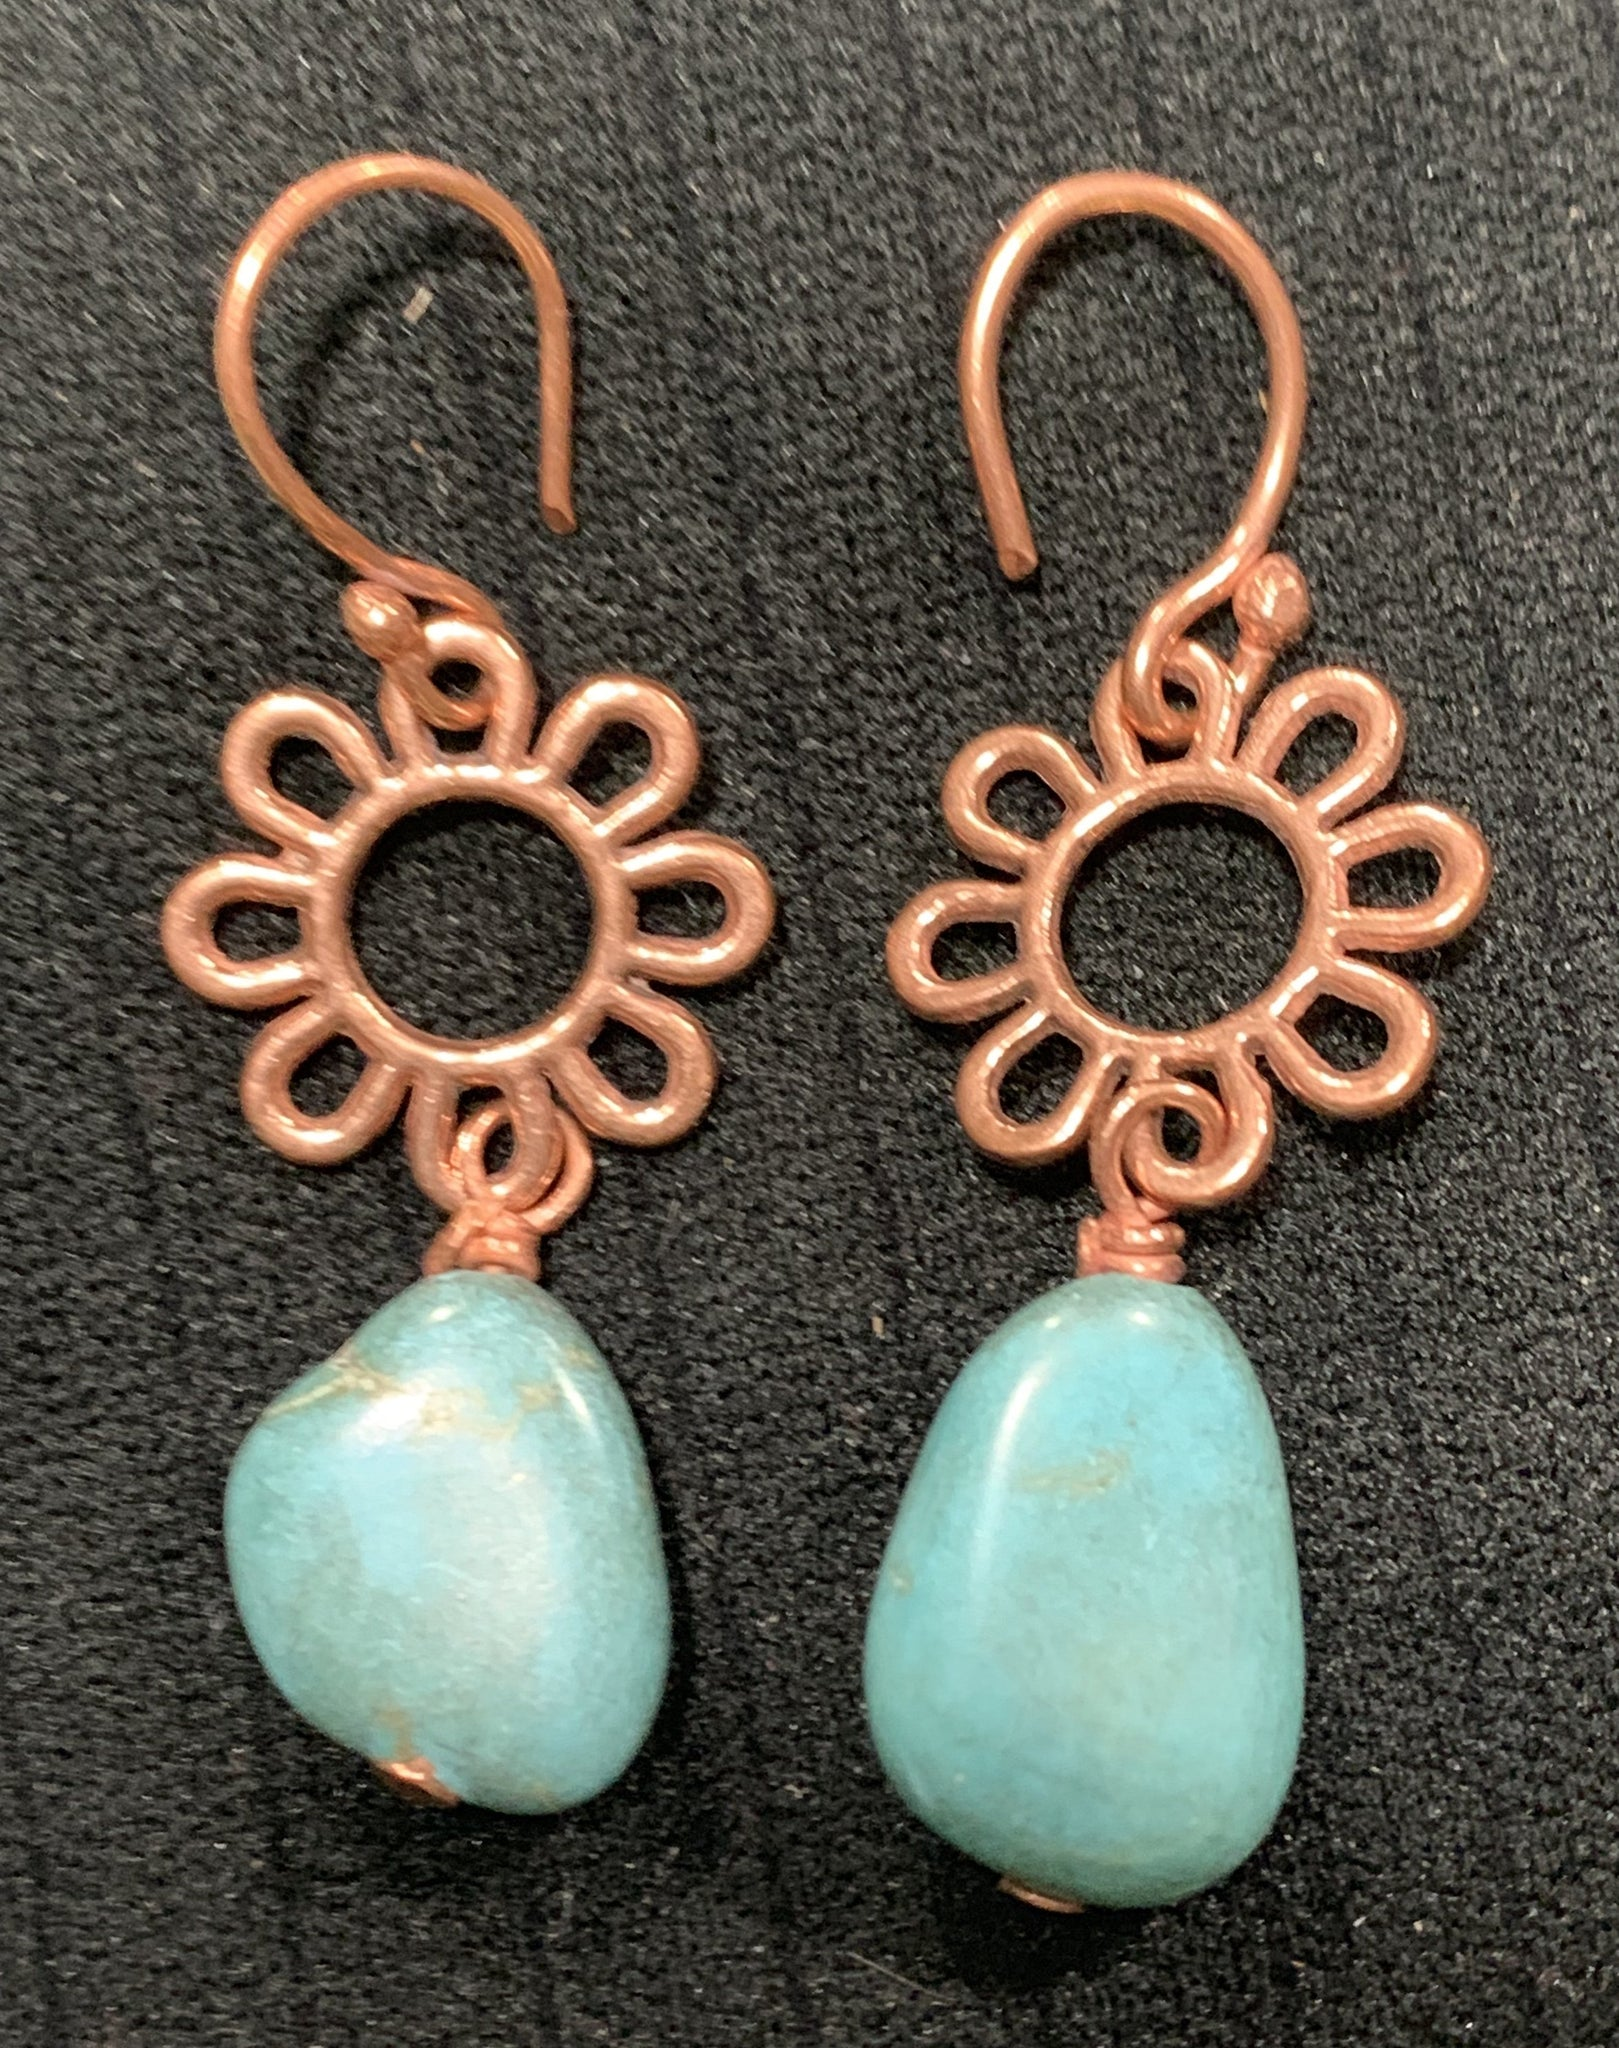 Faux Turquoise and Copper Earrings by Sarah Bernzott